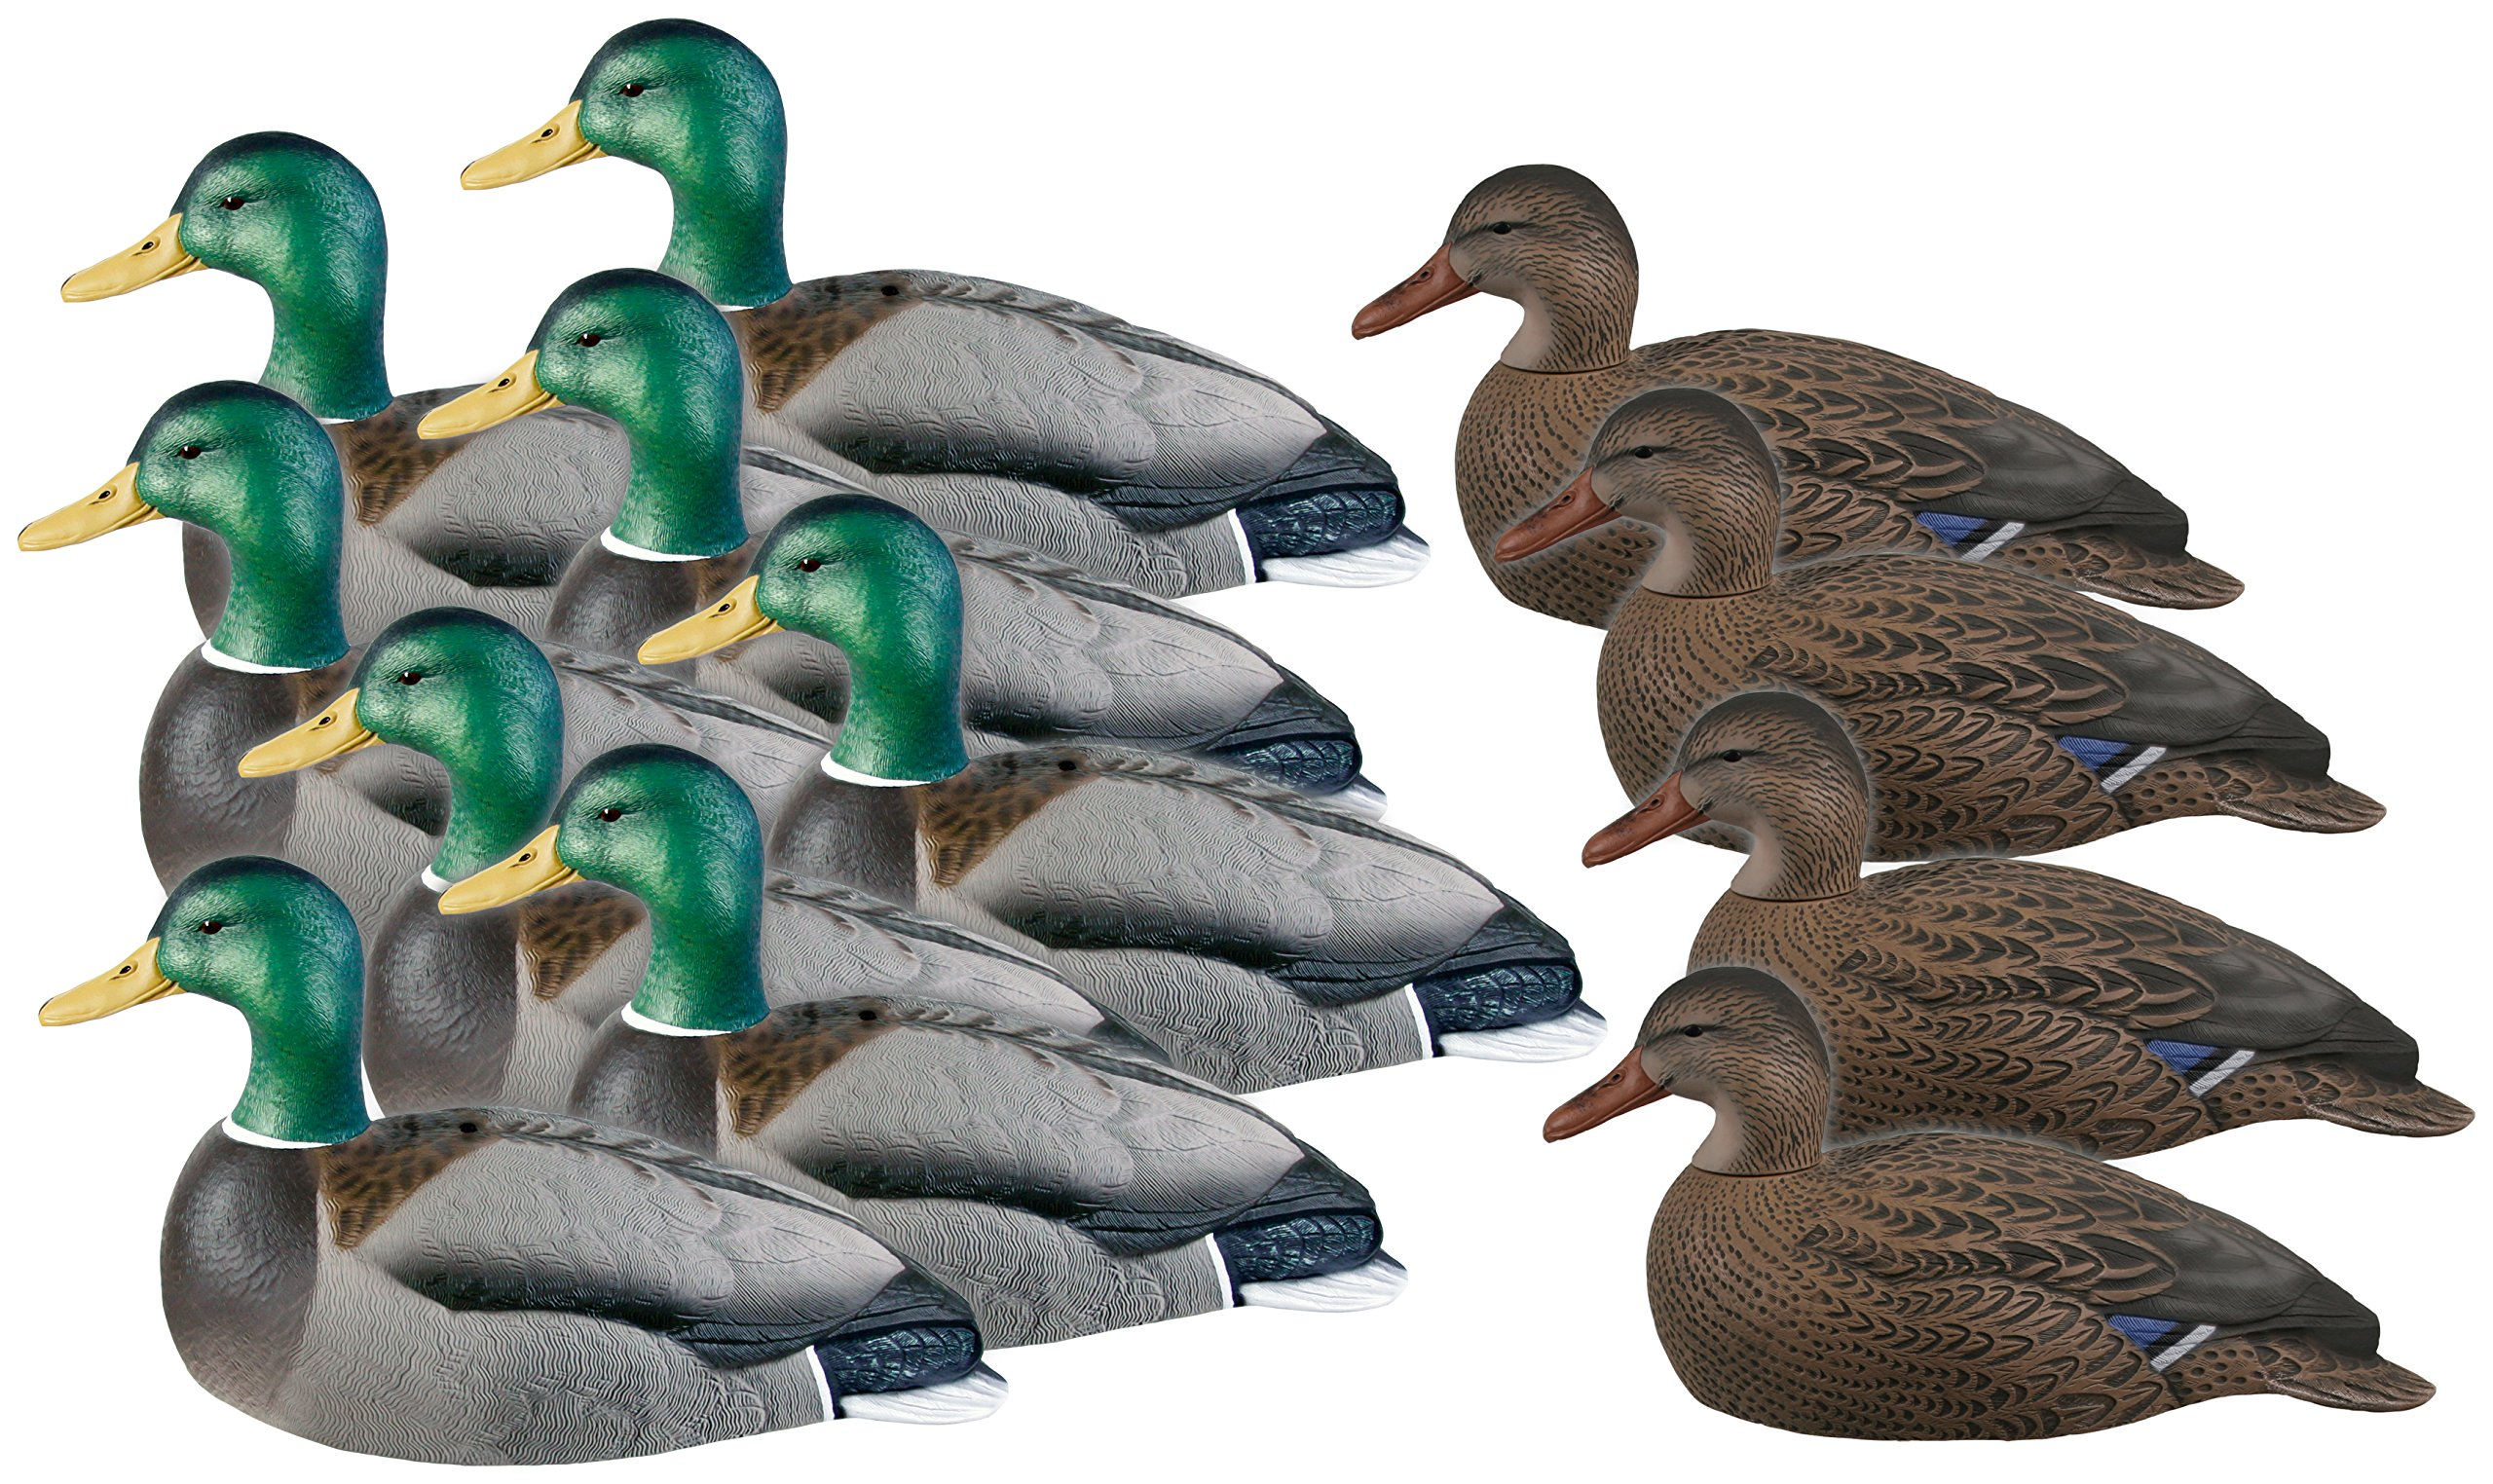 Avery GHG Over-Sized Mallard Shells with Motion Stakes - Dozen-Harvesters, AV-70167 by GreenHead Gear (Image #1)